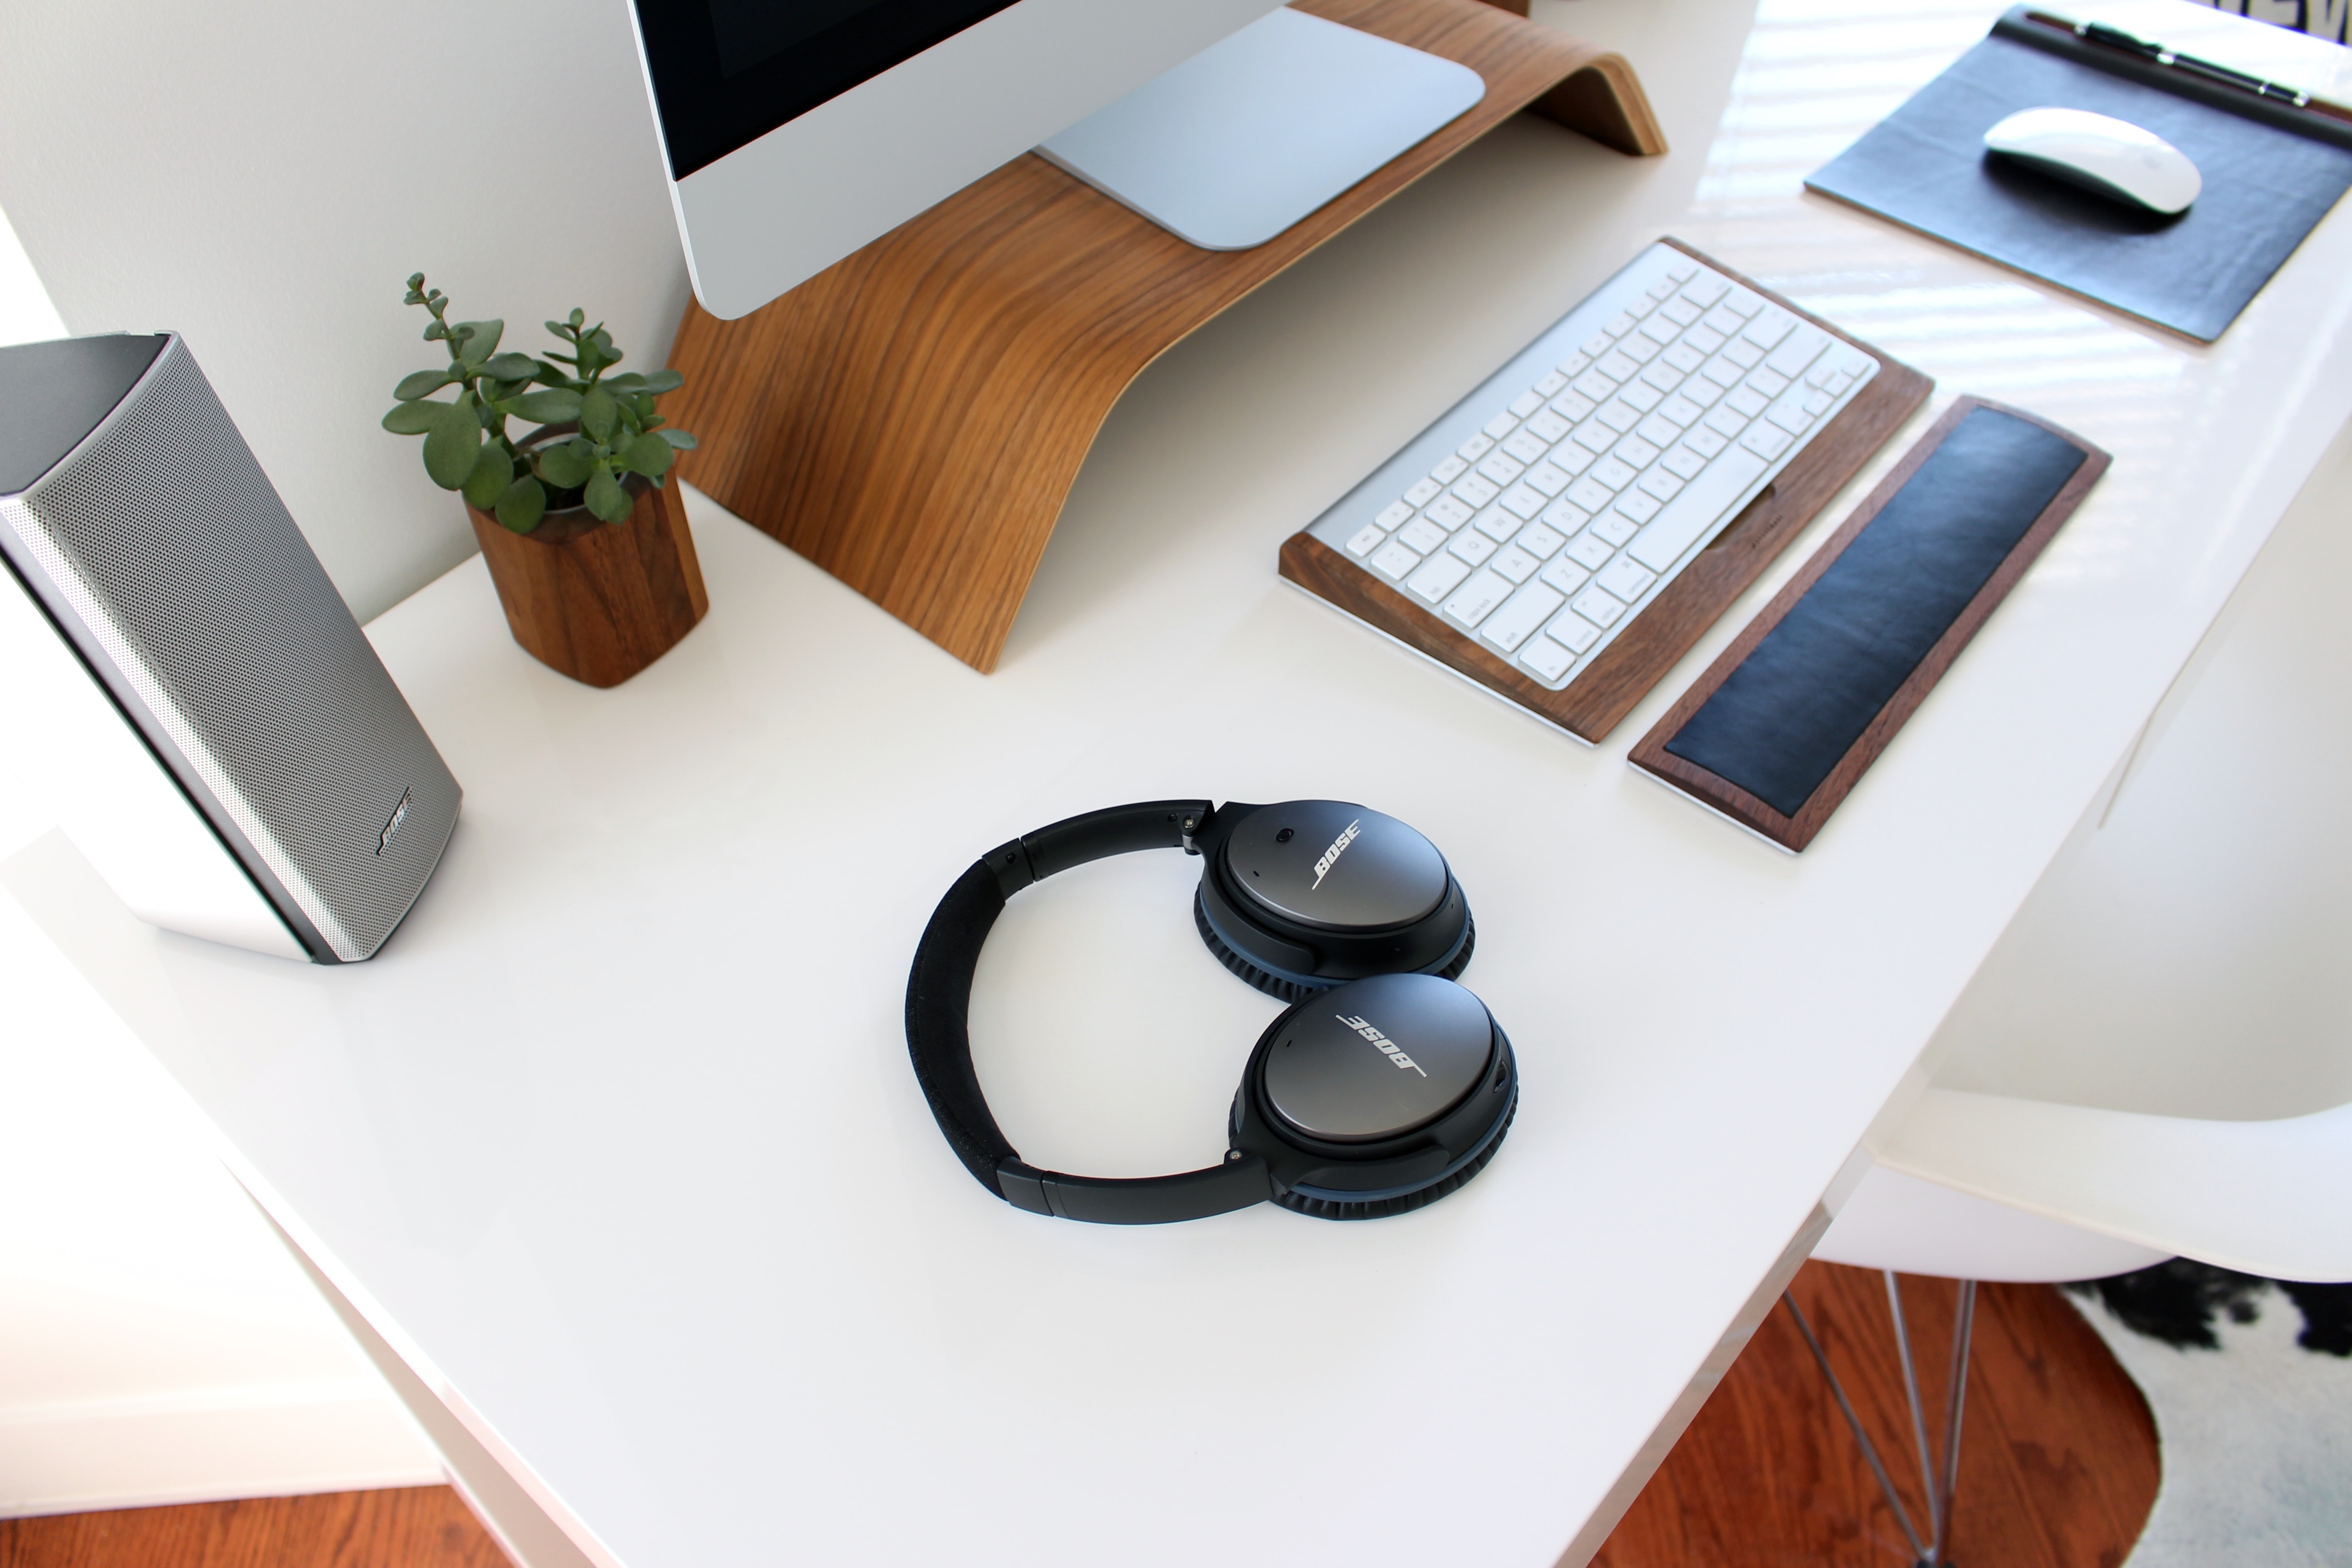 A desk with headphones, a keyboard and wrist wrest, monitor, mouse, speakers and a plant.